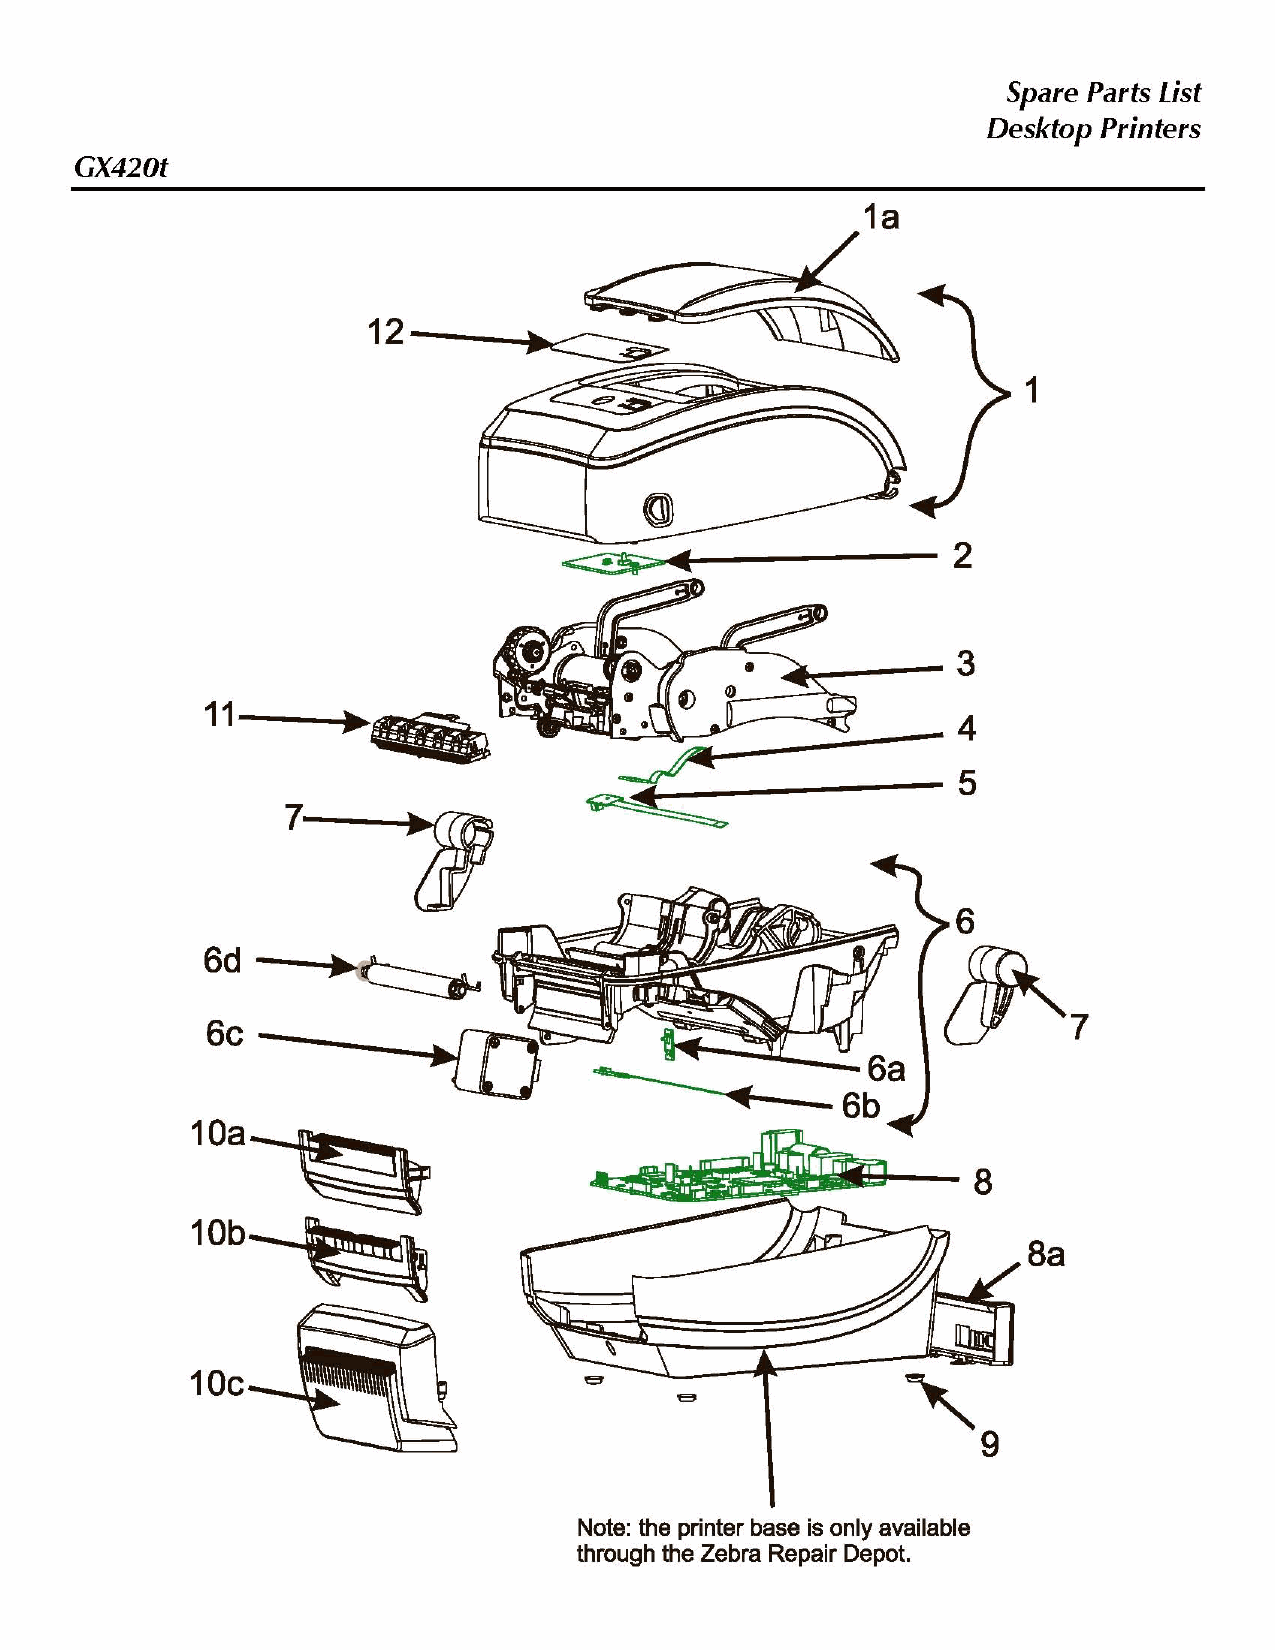 P0340 1999 toyota camry also Nfz in addition Saab 2004 9 3 Engine Diagram likewise Infiniti Fx35 Thermostat Location further 2000 Lexus Rx300 Knock Sensor Location. on oxygen sensor location saab